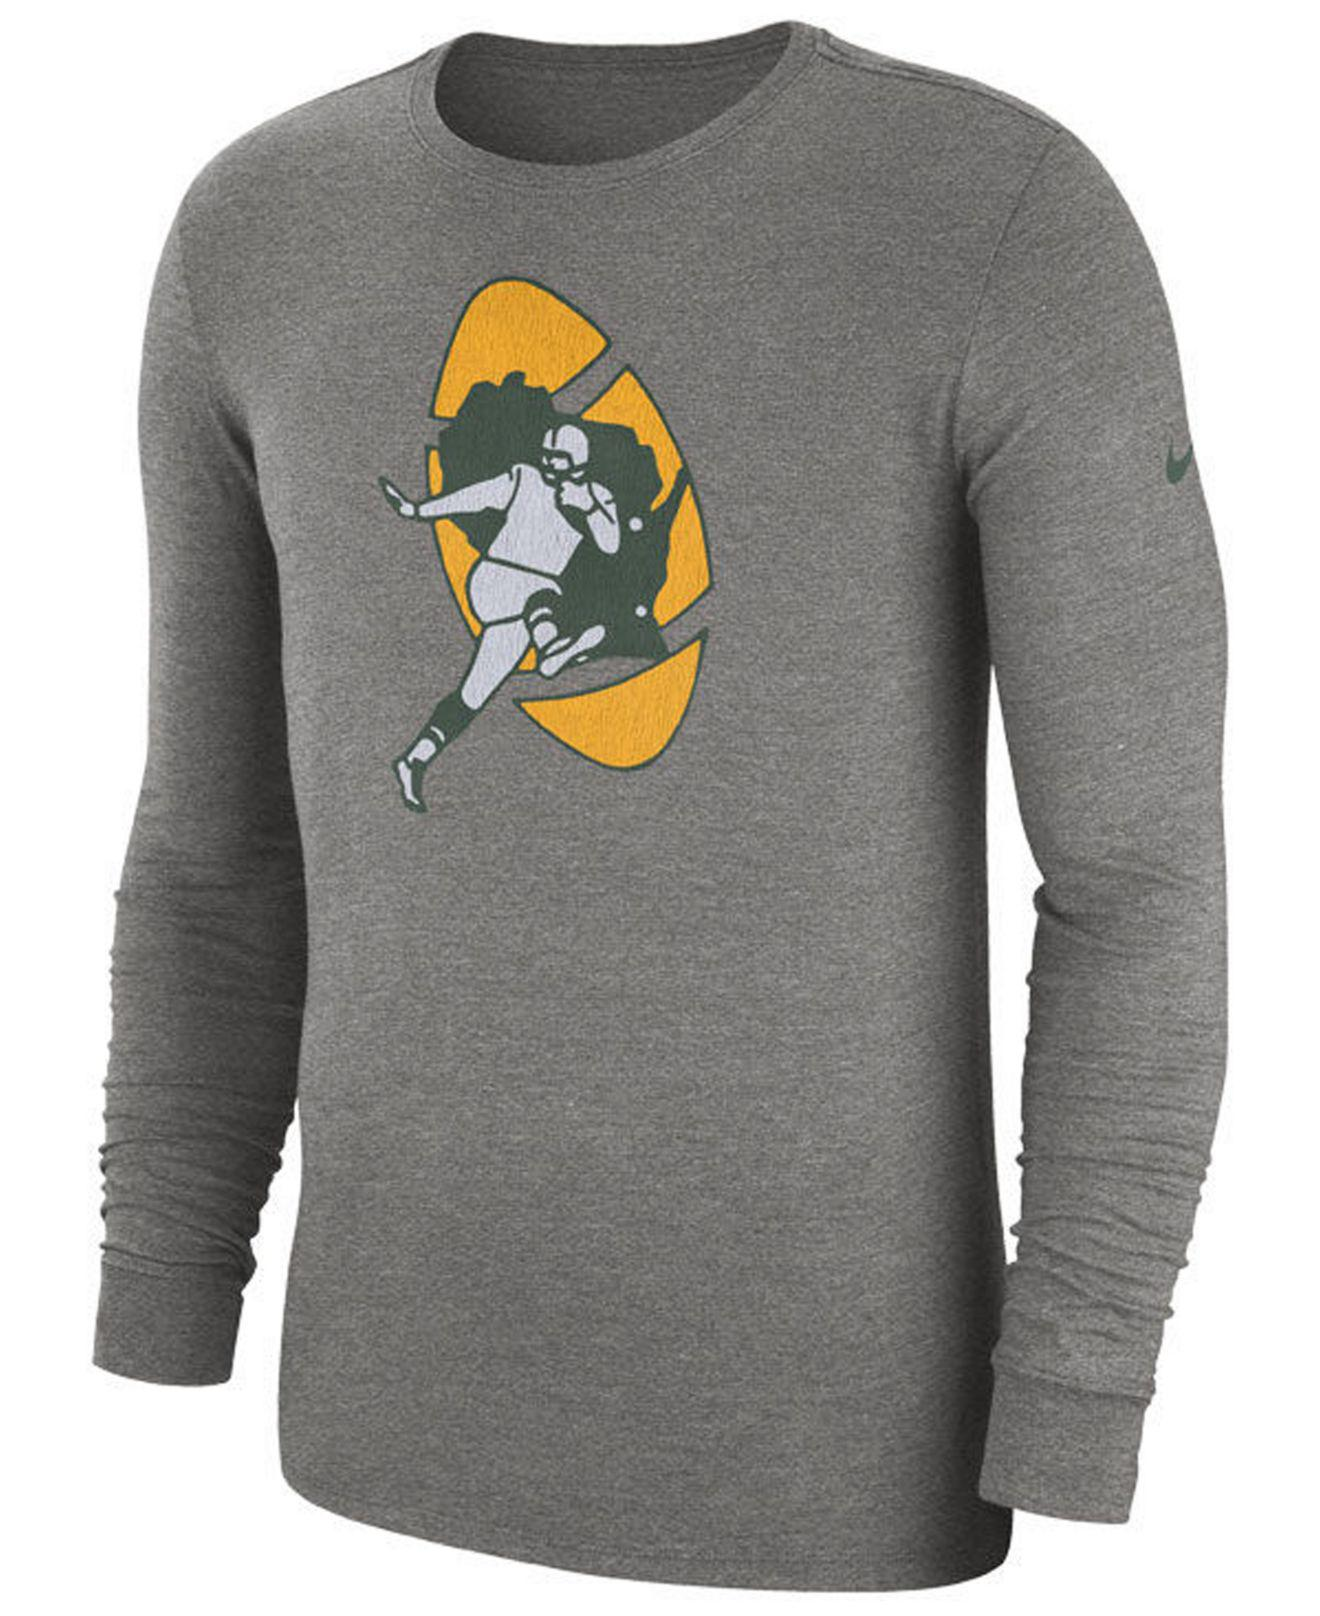 Nike. Men s Gray Green Bay Packers Historic Crackle Long Sleeve Tri-blend T- shirt 81fb2aabb